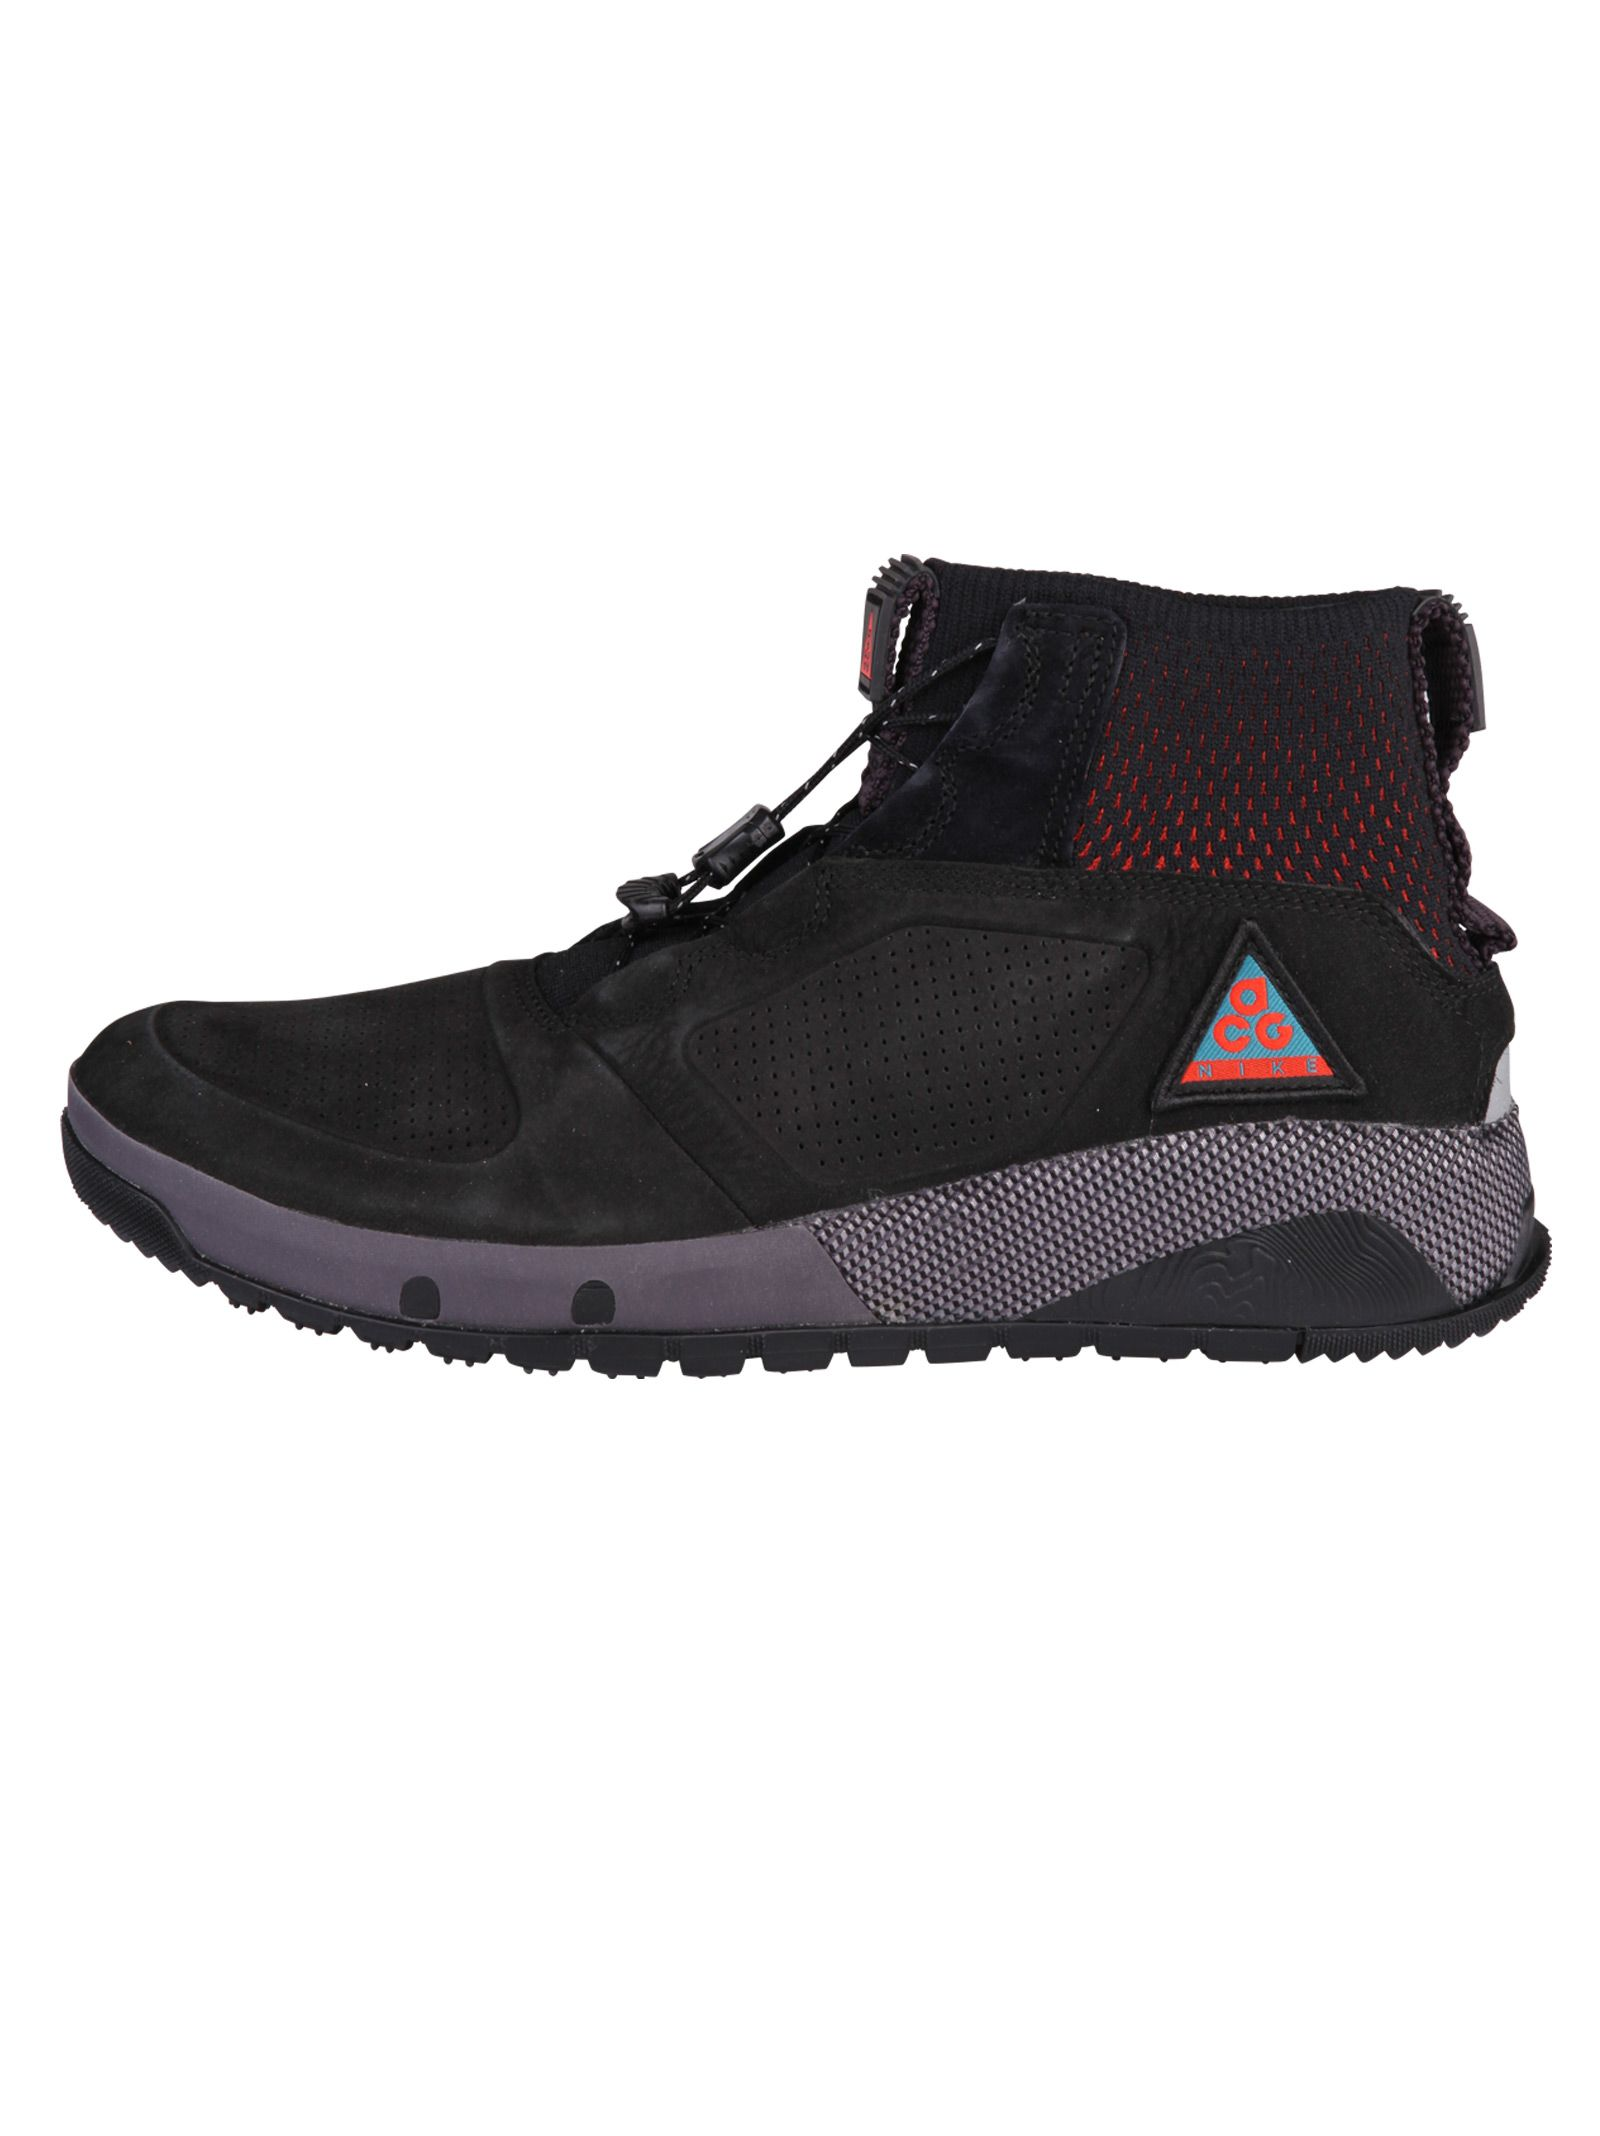 01115a37d9 italist   Best price in the market for Nike Nike Sneakers - Nero ...